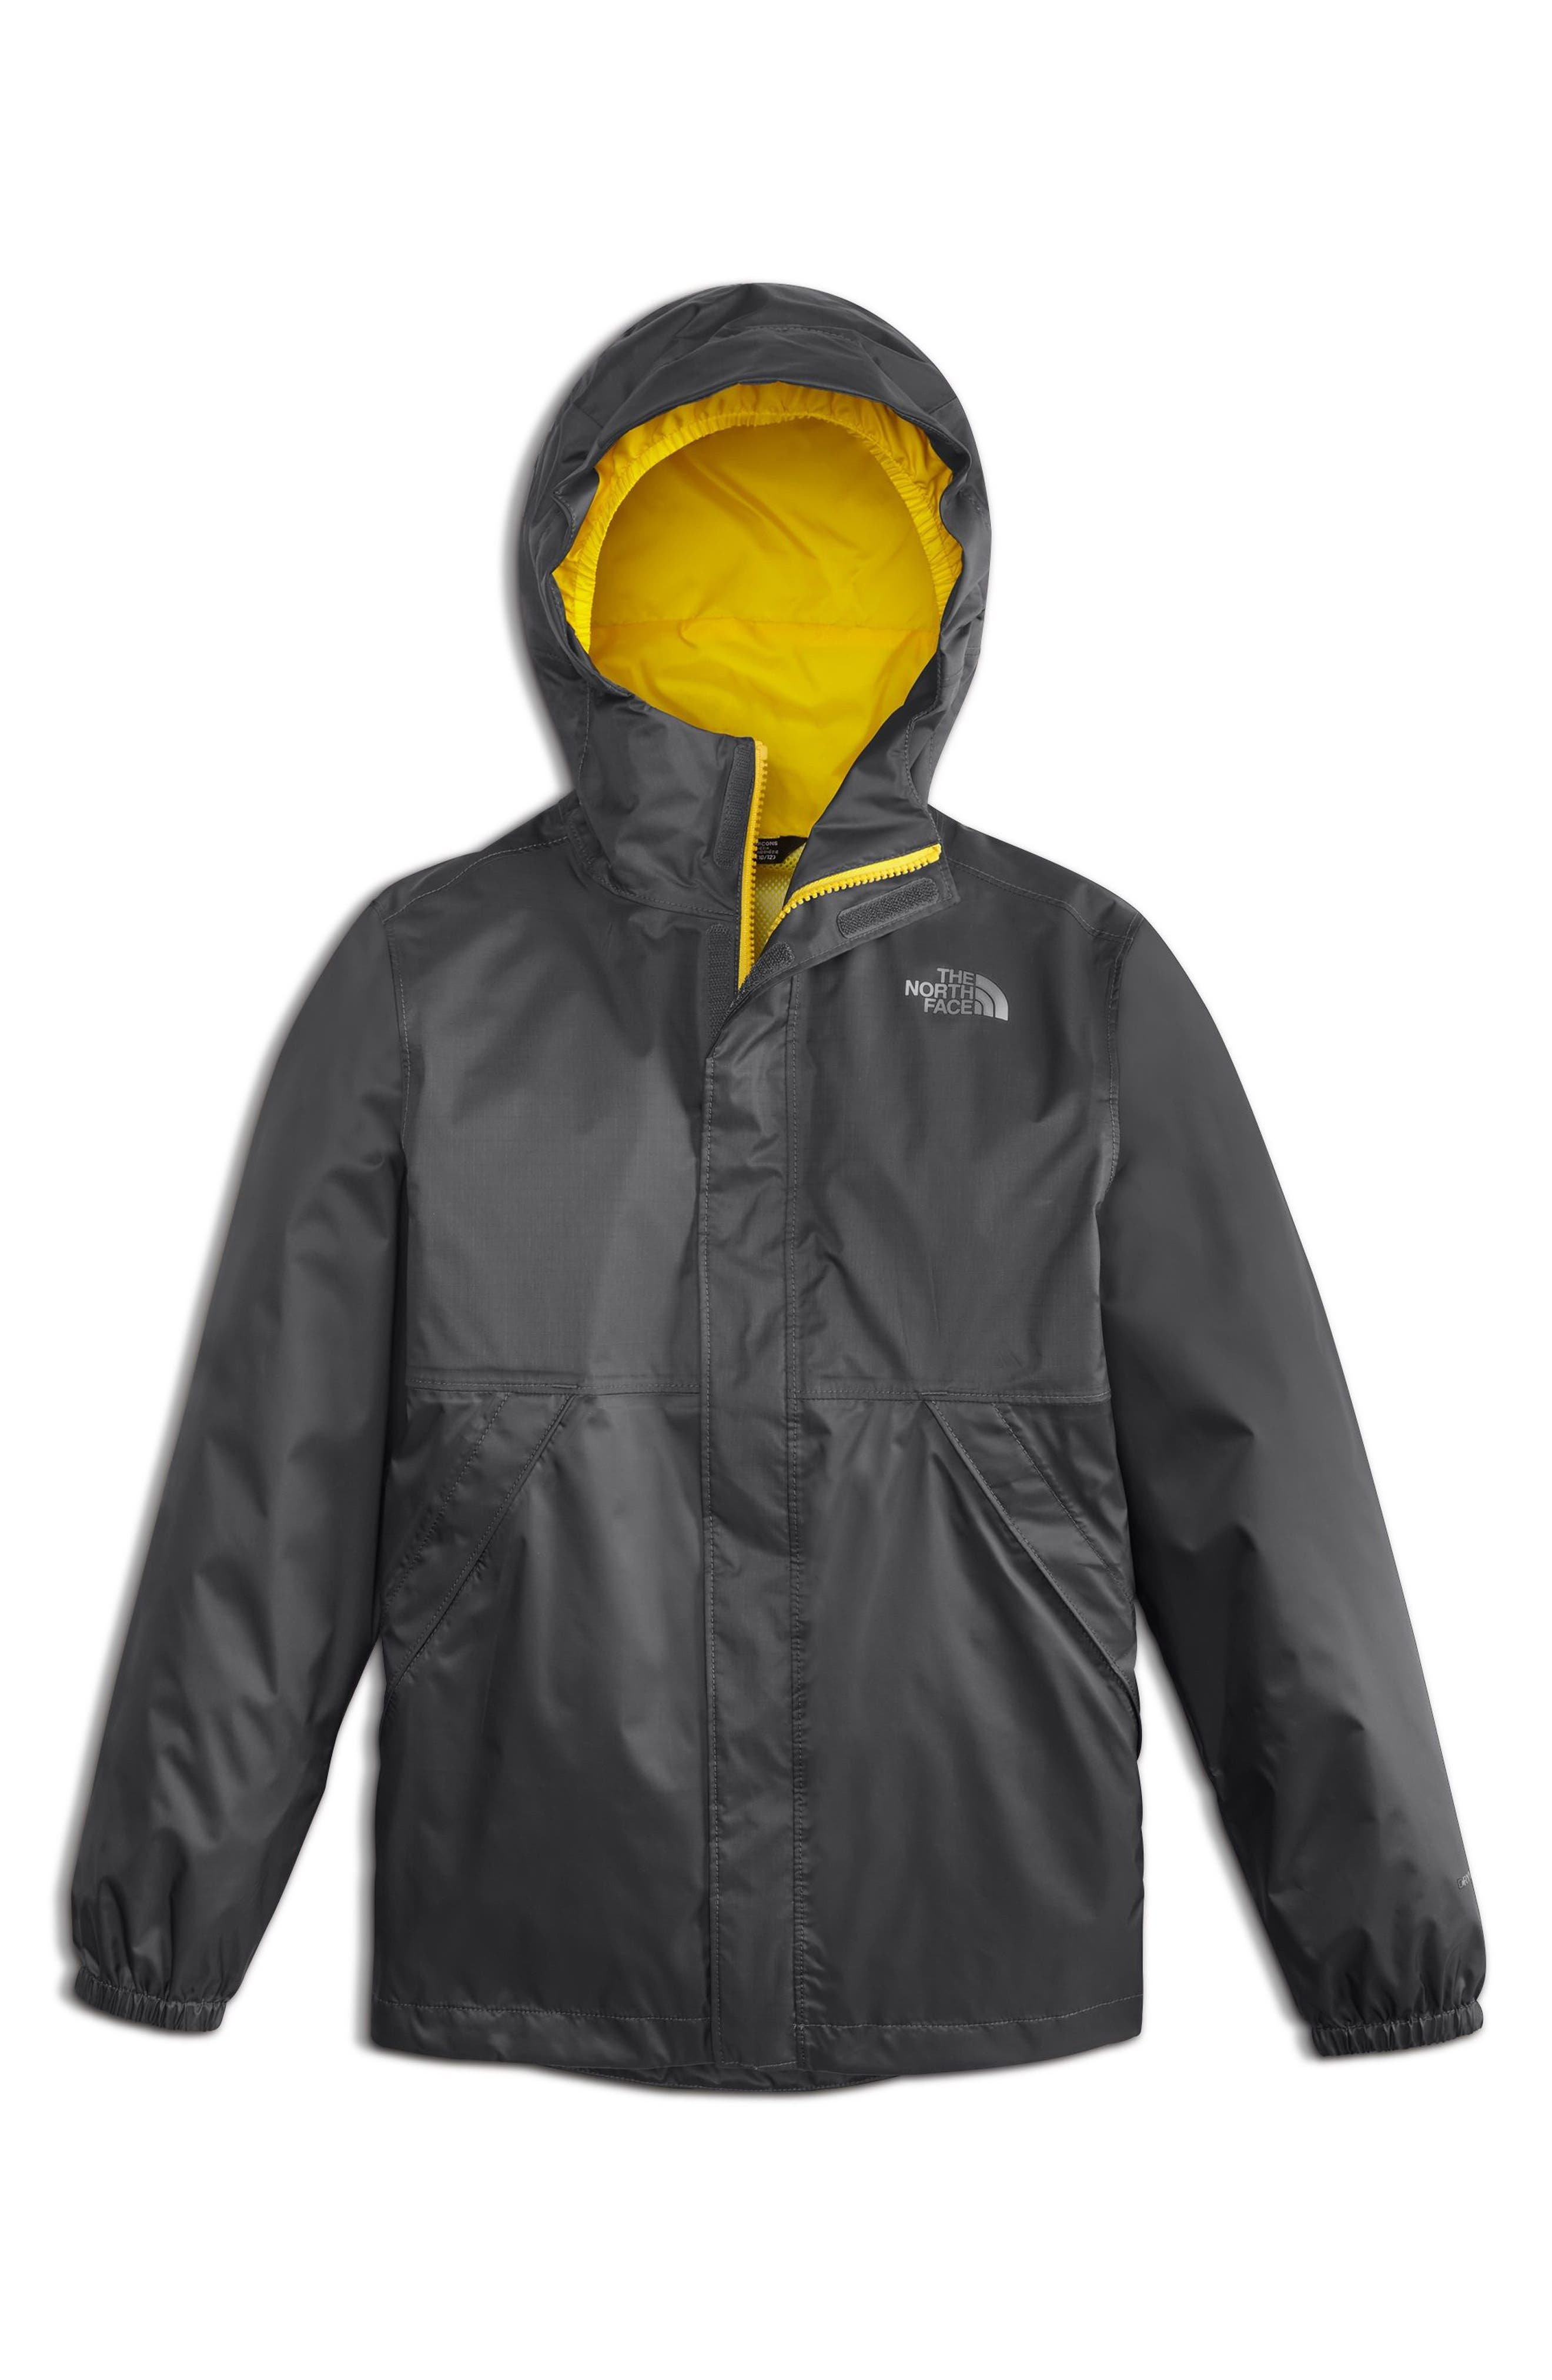 Main Image - The North Face Stormy Rain TriClimate® Waterproof 3-in-1 Jacket (Big Boys)